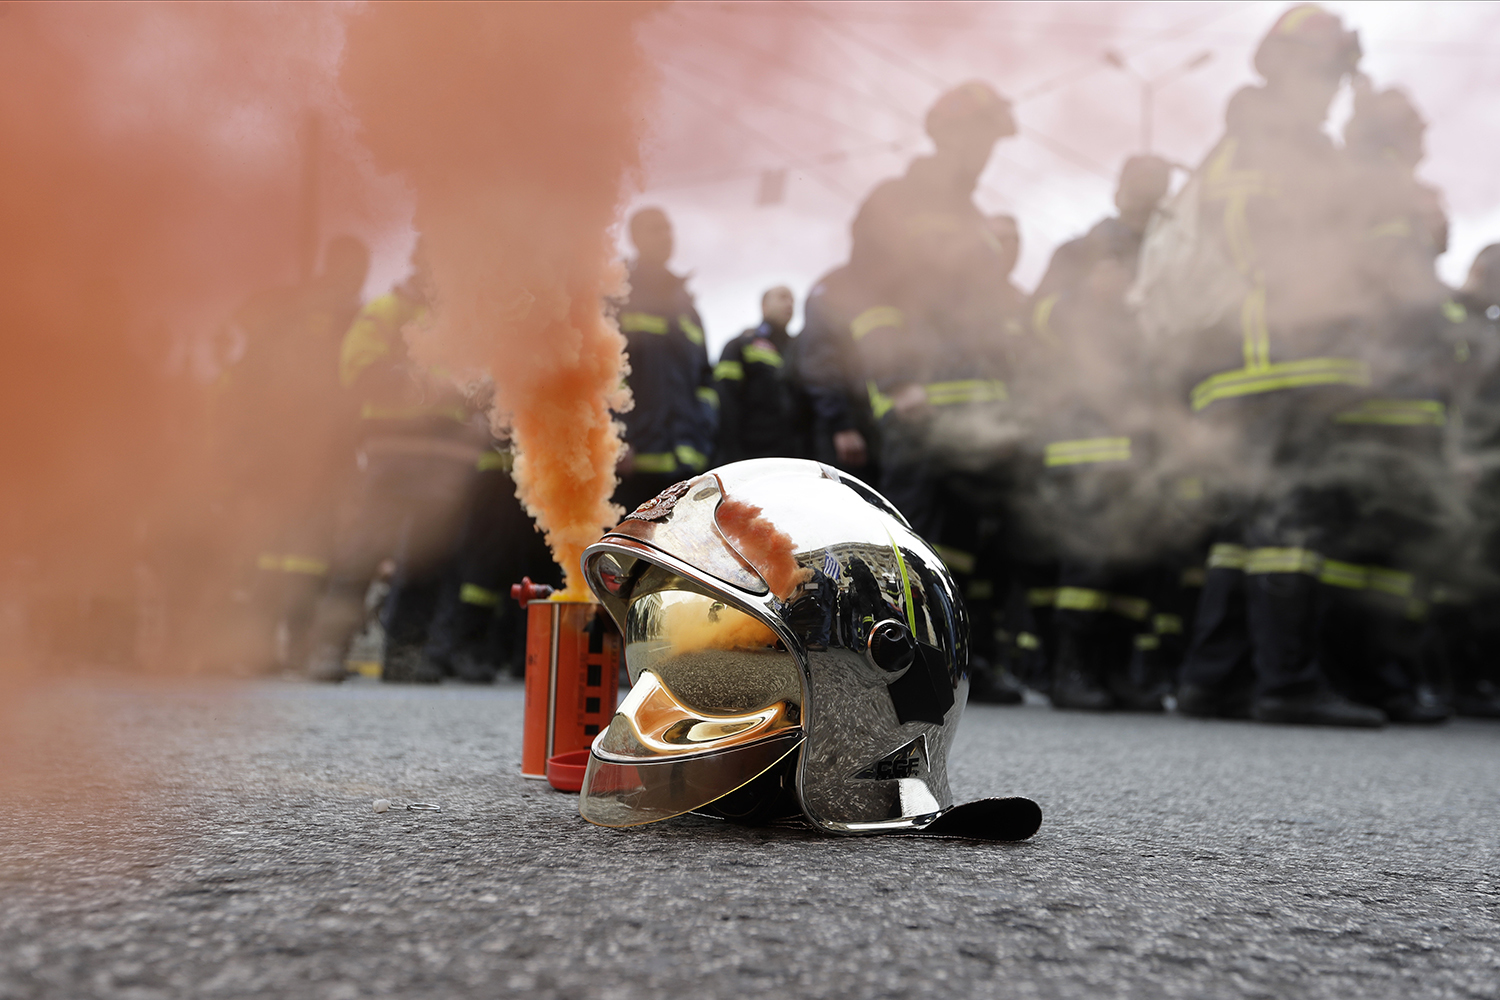 A firefighter's helmet stands next to a flare during a protest in central Athens, on Wednesday, Feb. 8 2017. Hundreds of firefighters in uniform have taken to the streets of the Greek capital to protest hiring conditions. (AP Photo/Thanassis Stavrakis)